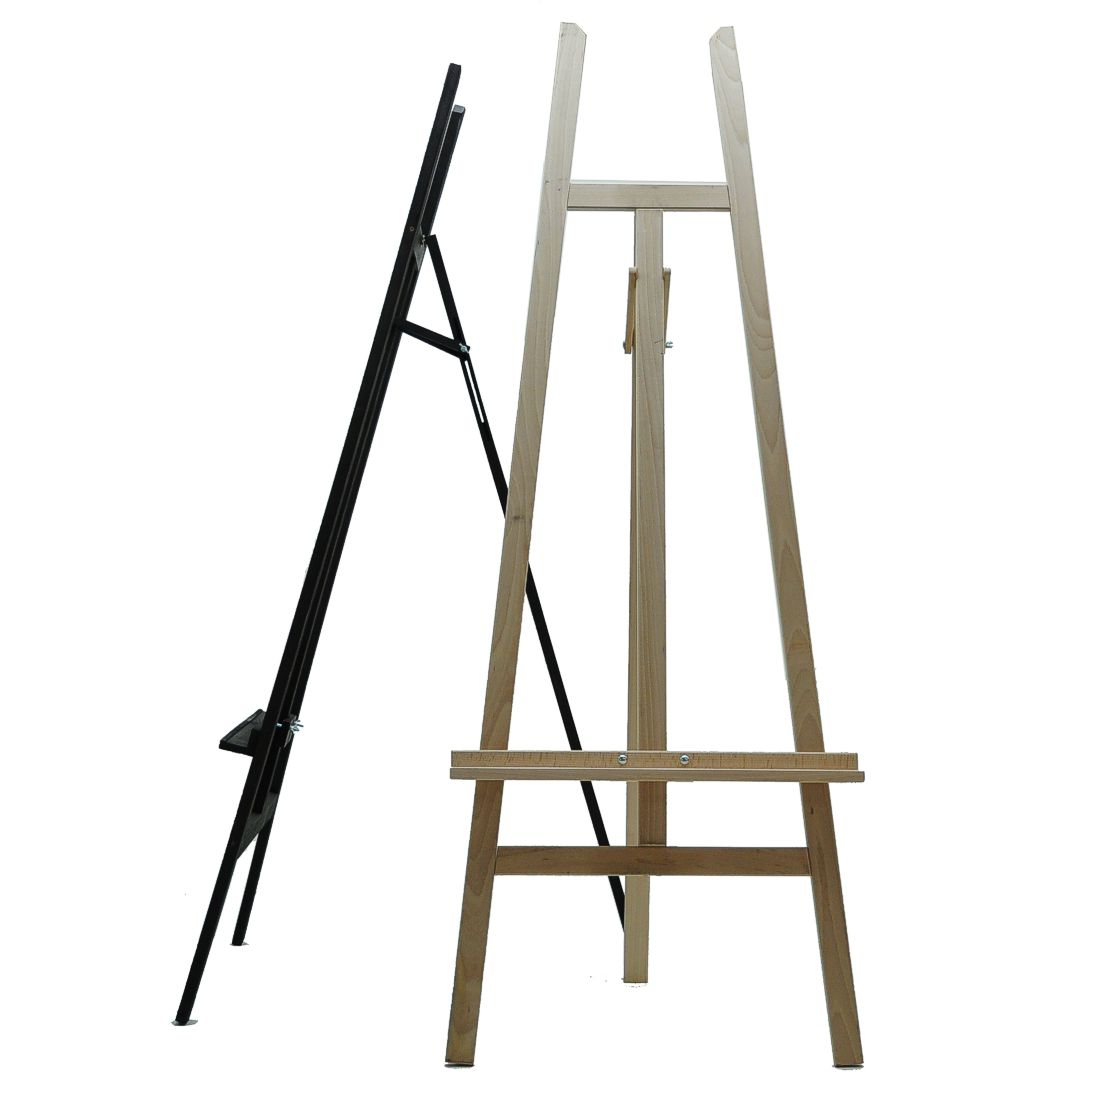 Easel display stands